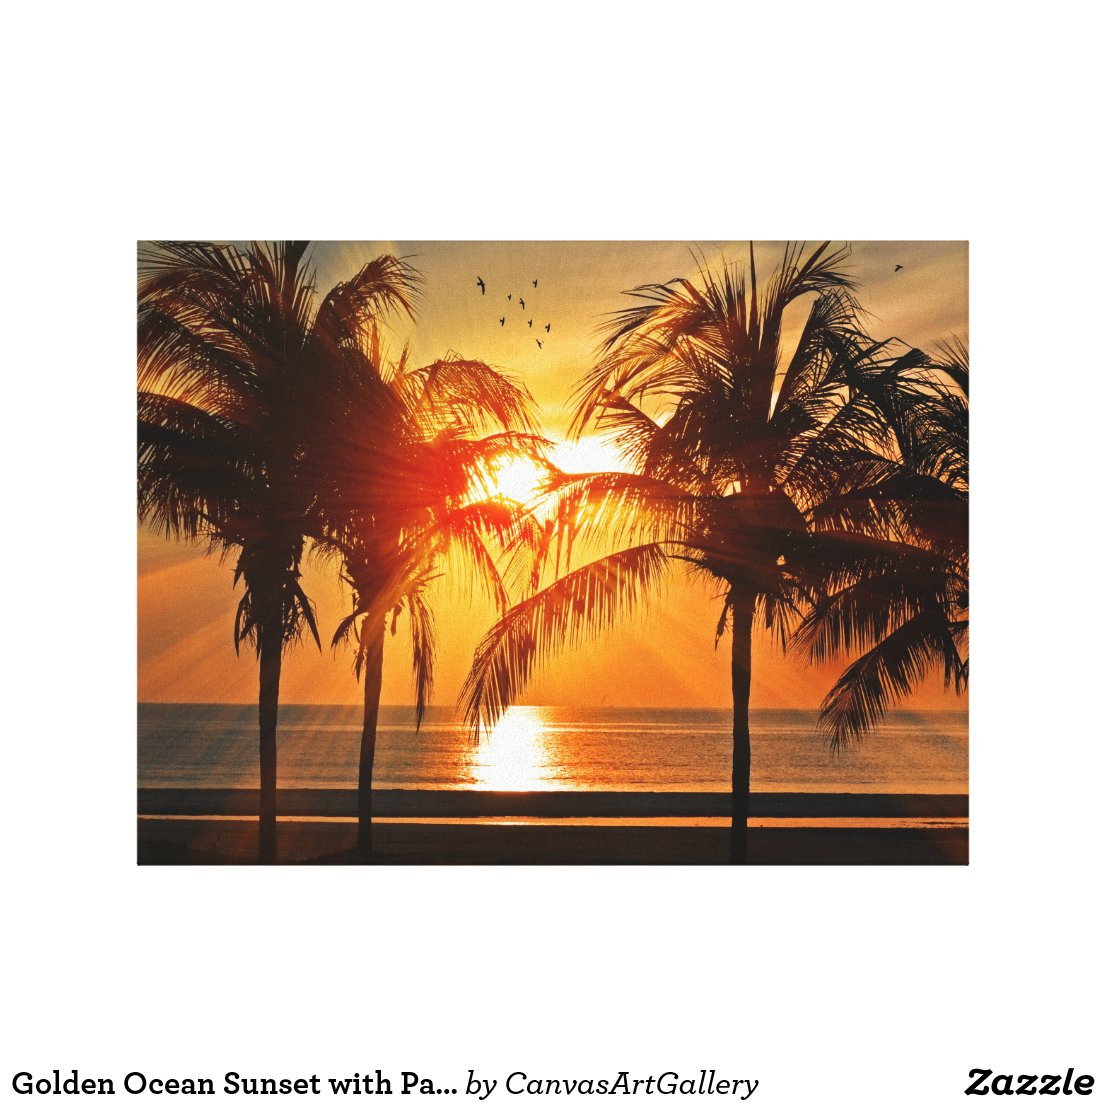 Golden Ocean Sunset with Palm Trees